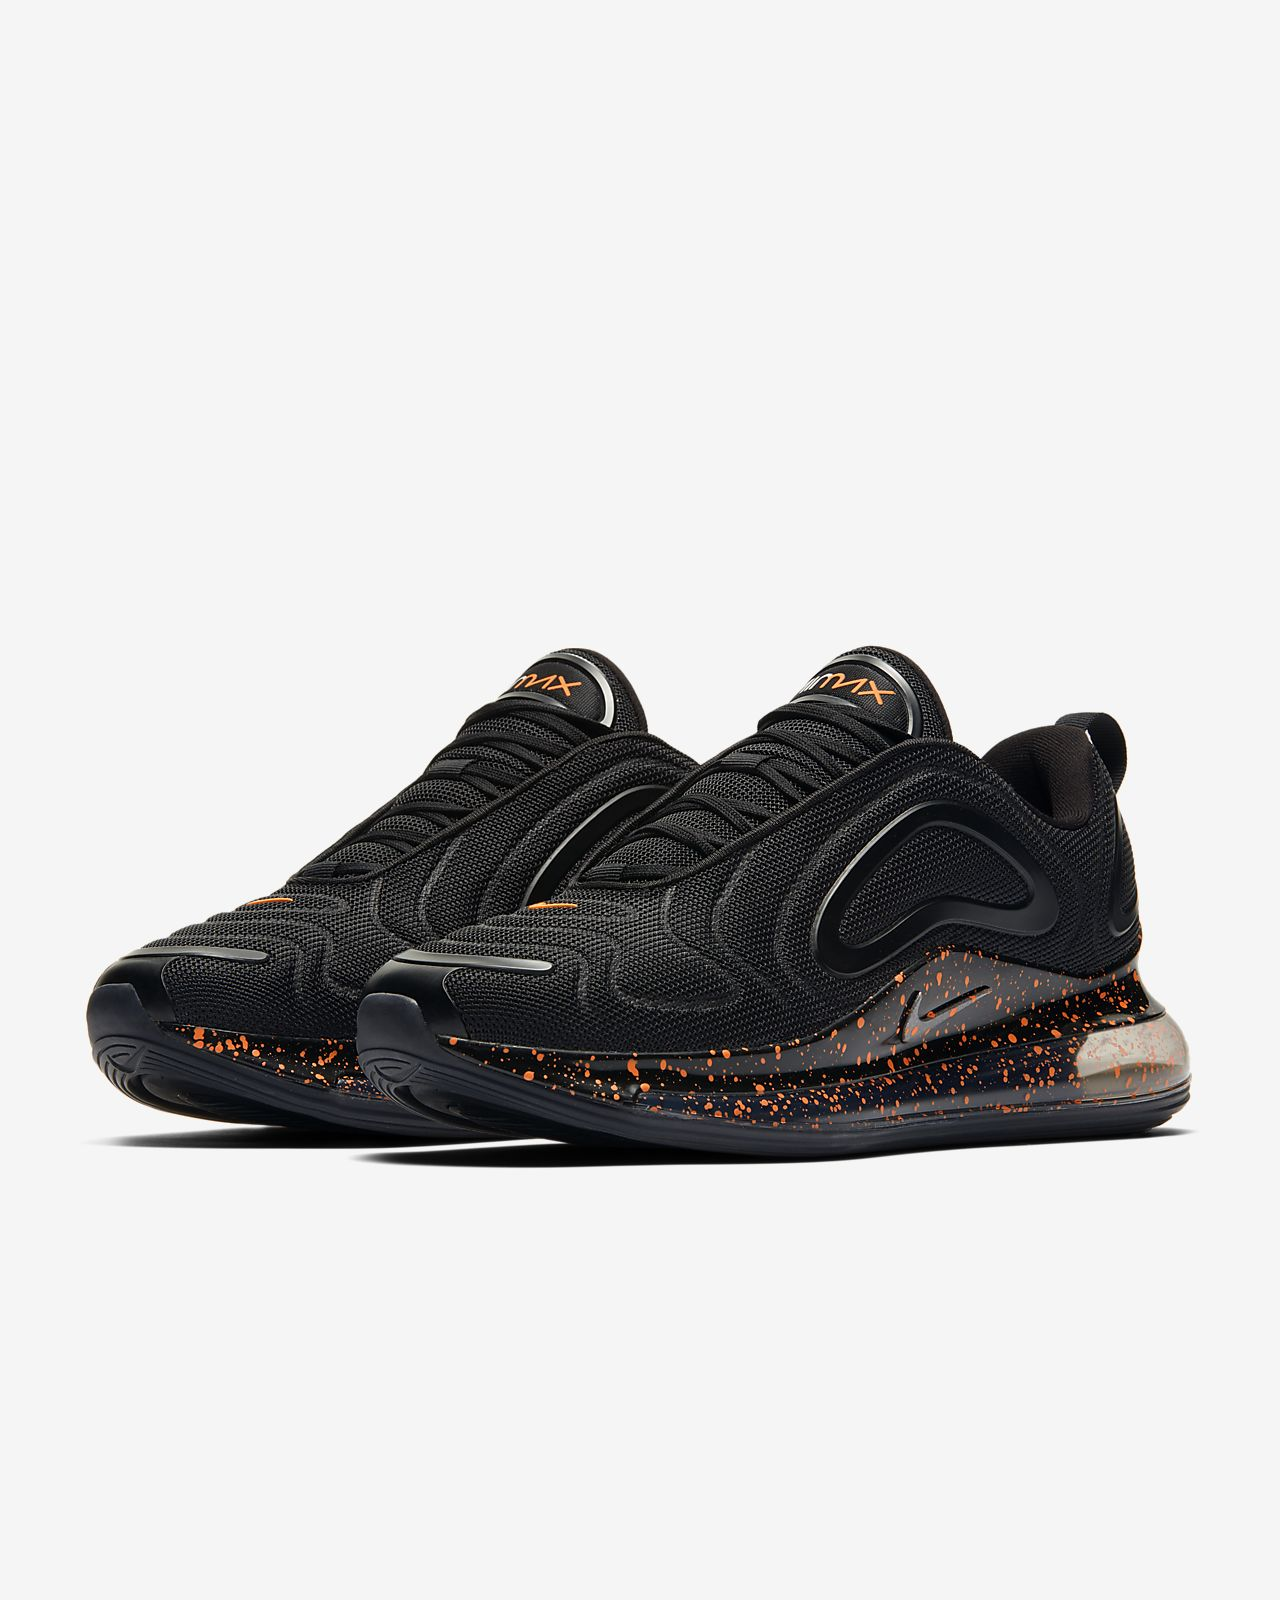 check out be01b 1494e Men s Shoe. Nike Air Max 720